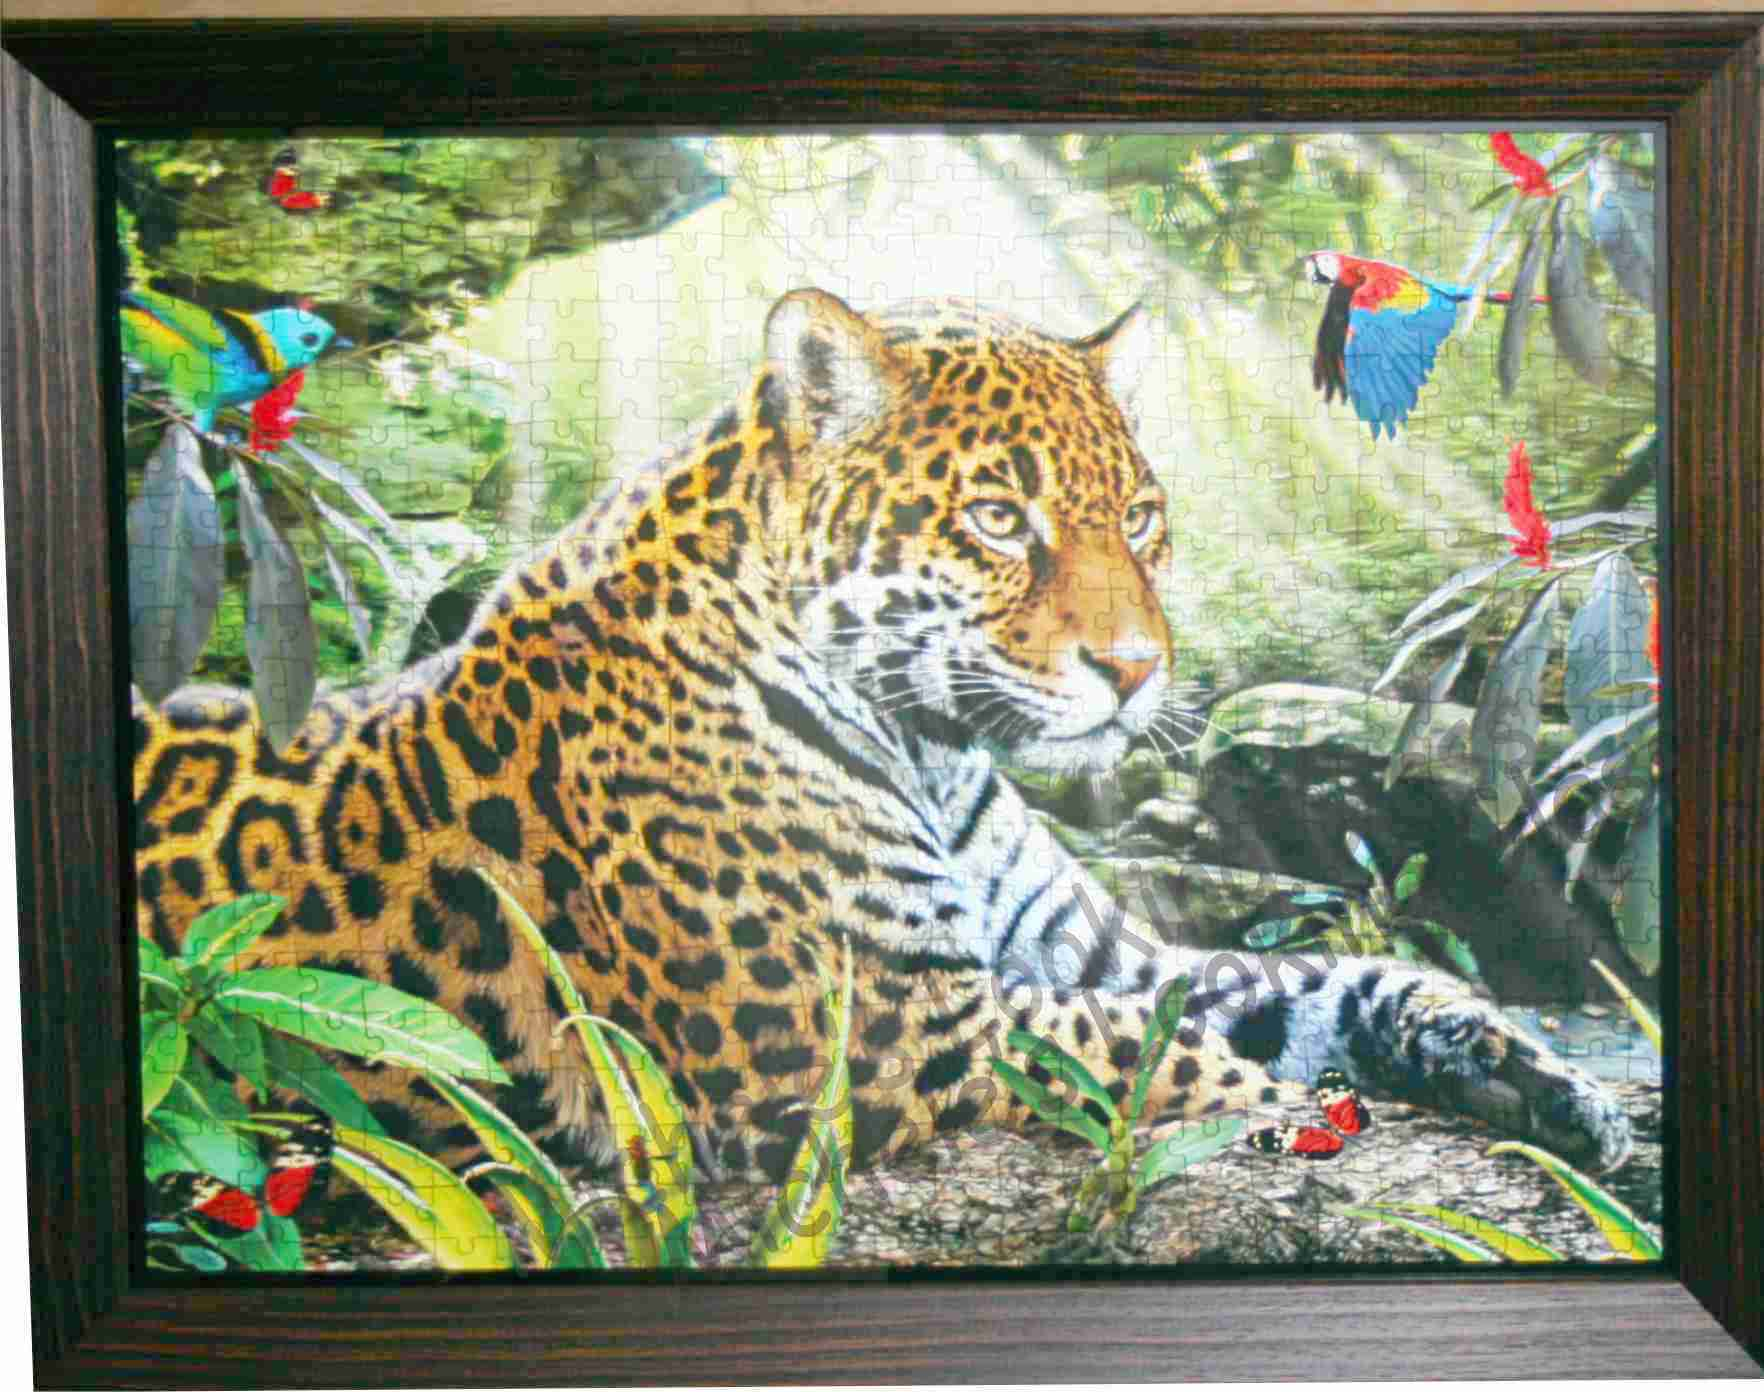 Framed 3-d puzzle with a double frame